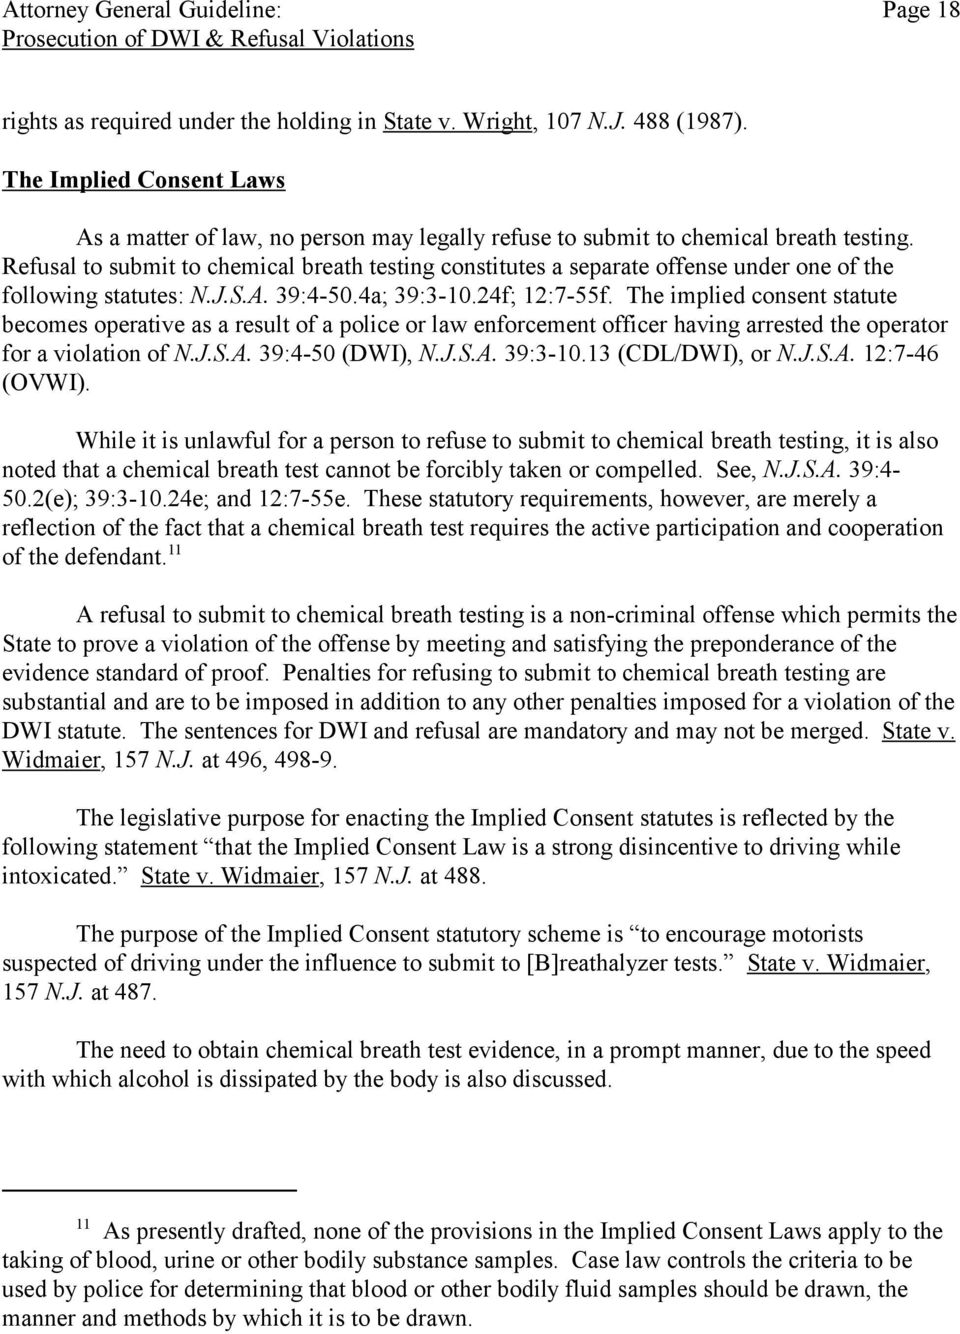 Refusal to submit to chemical breath testing constitutes a separate offense under one of the following statutes: N.J.S.A. 39:4-50.4a; 39:3-10.24f; 12:7-55f.